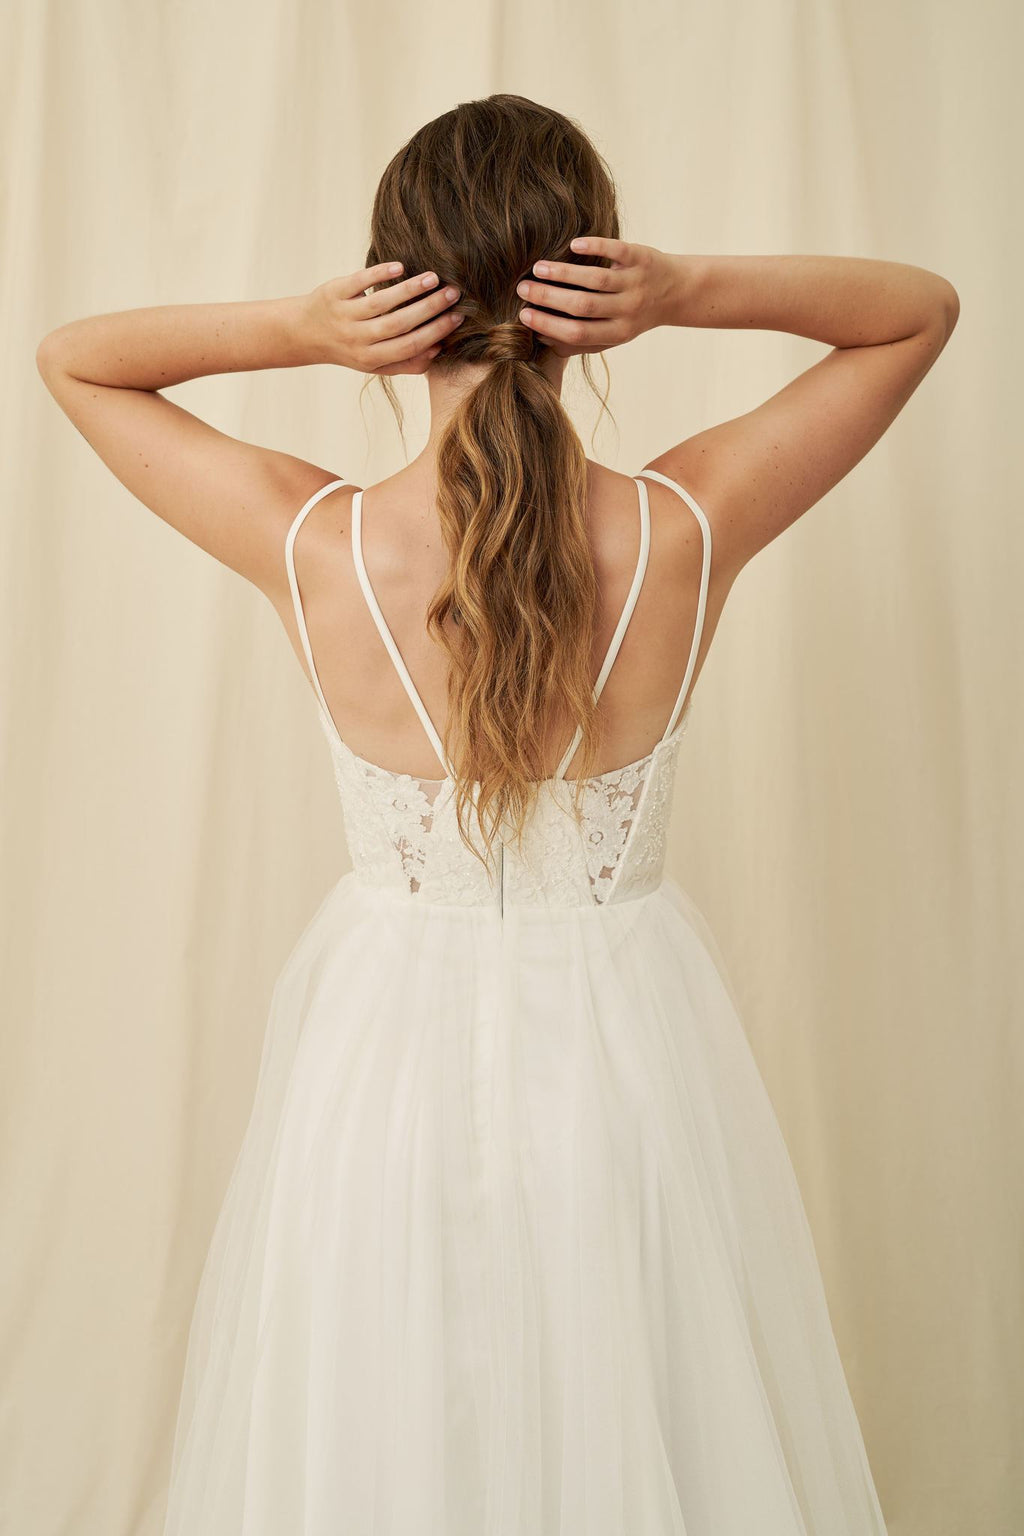 Delicate beaded wedding dress with double straps, geometrical cutouts, and a tulle skirt